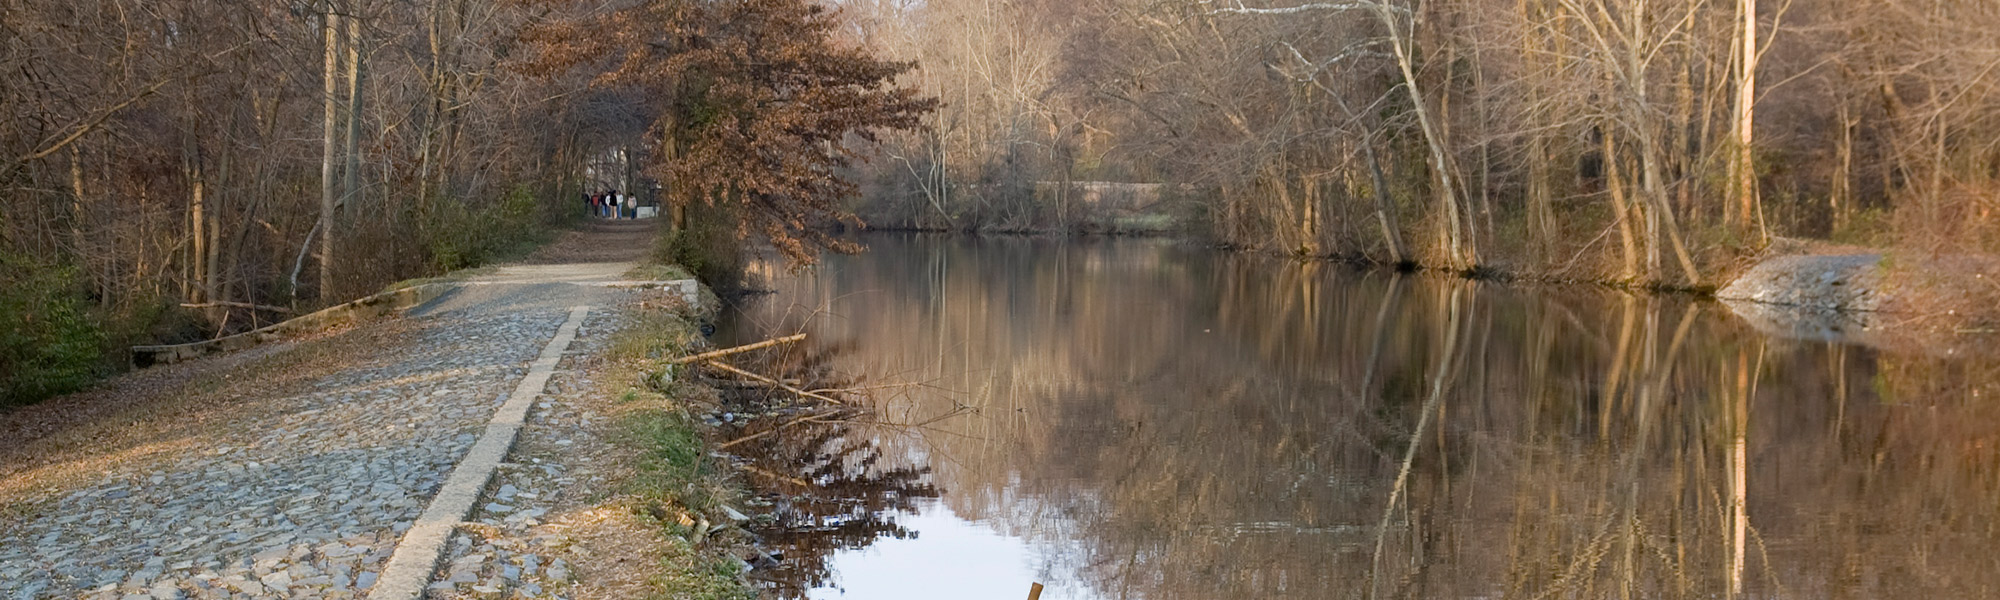 Photo of the Delaware and Raritan Canal